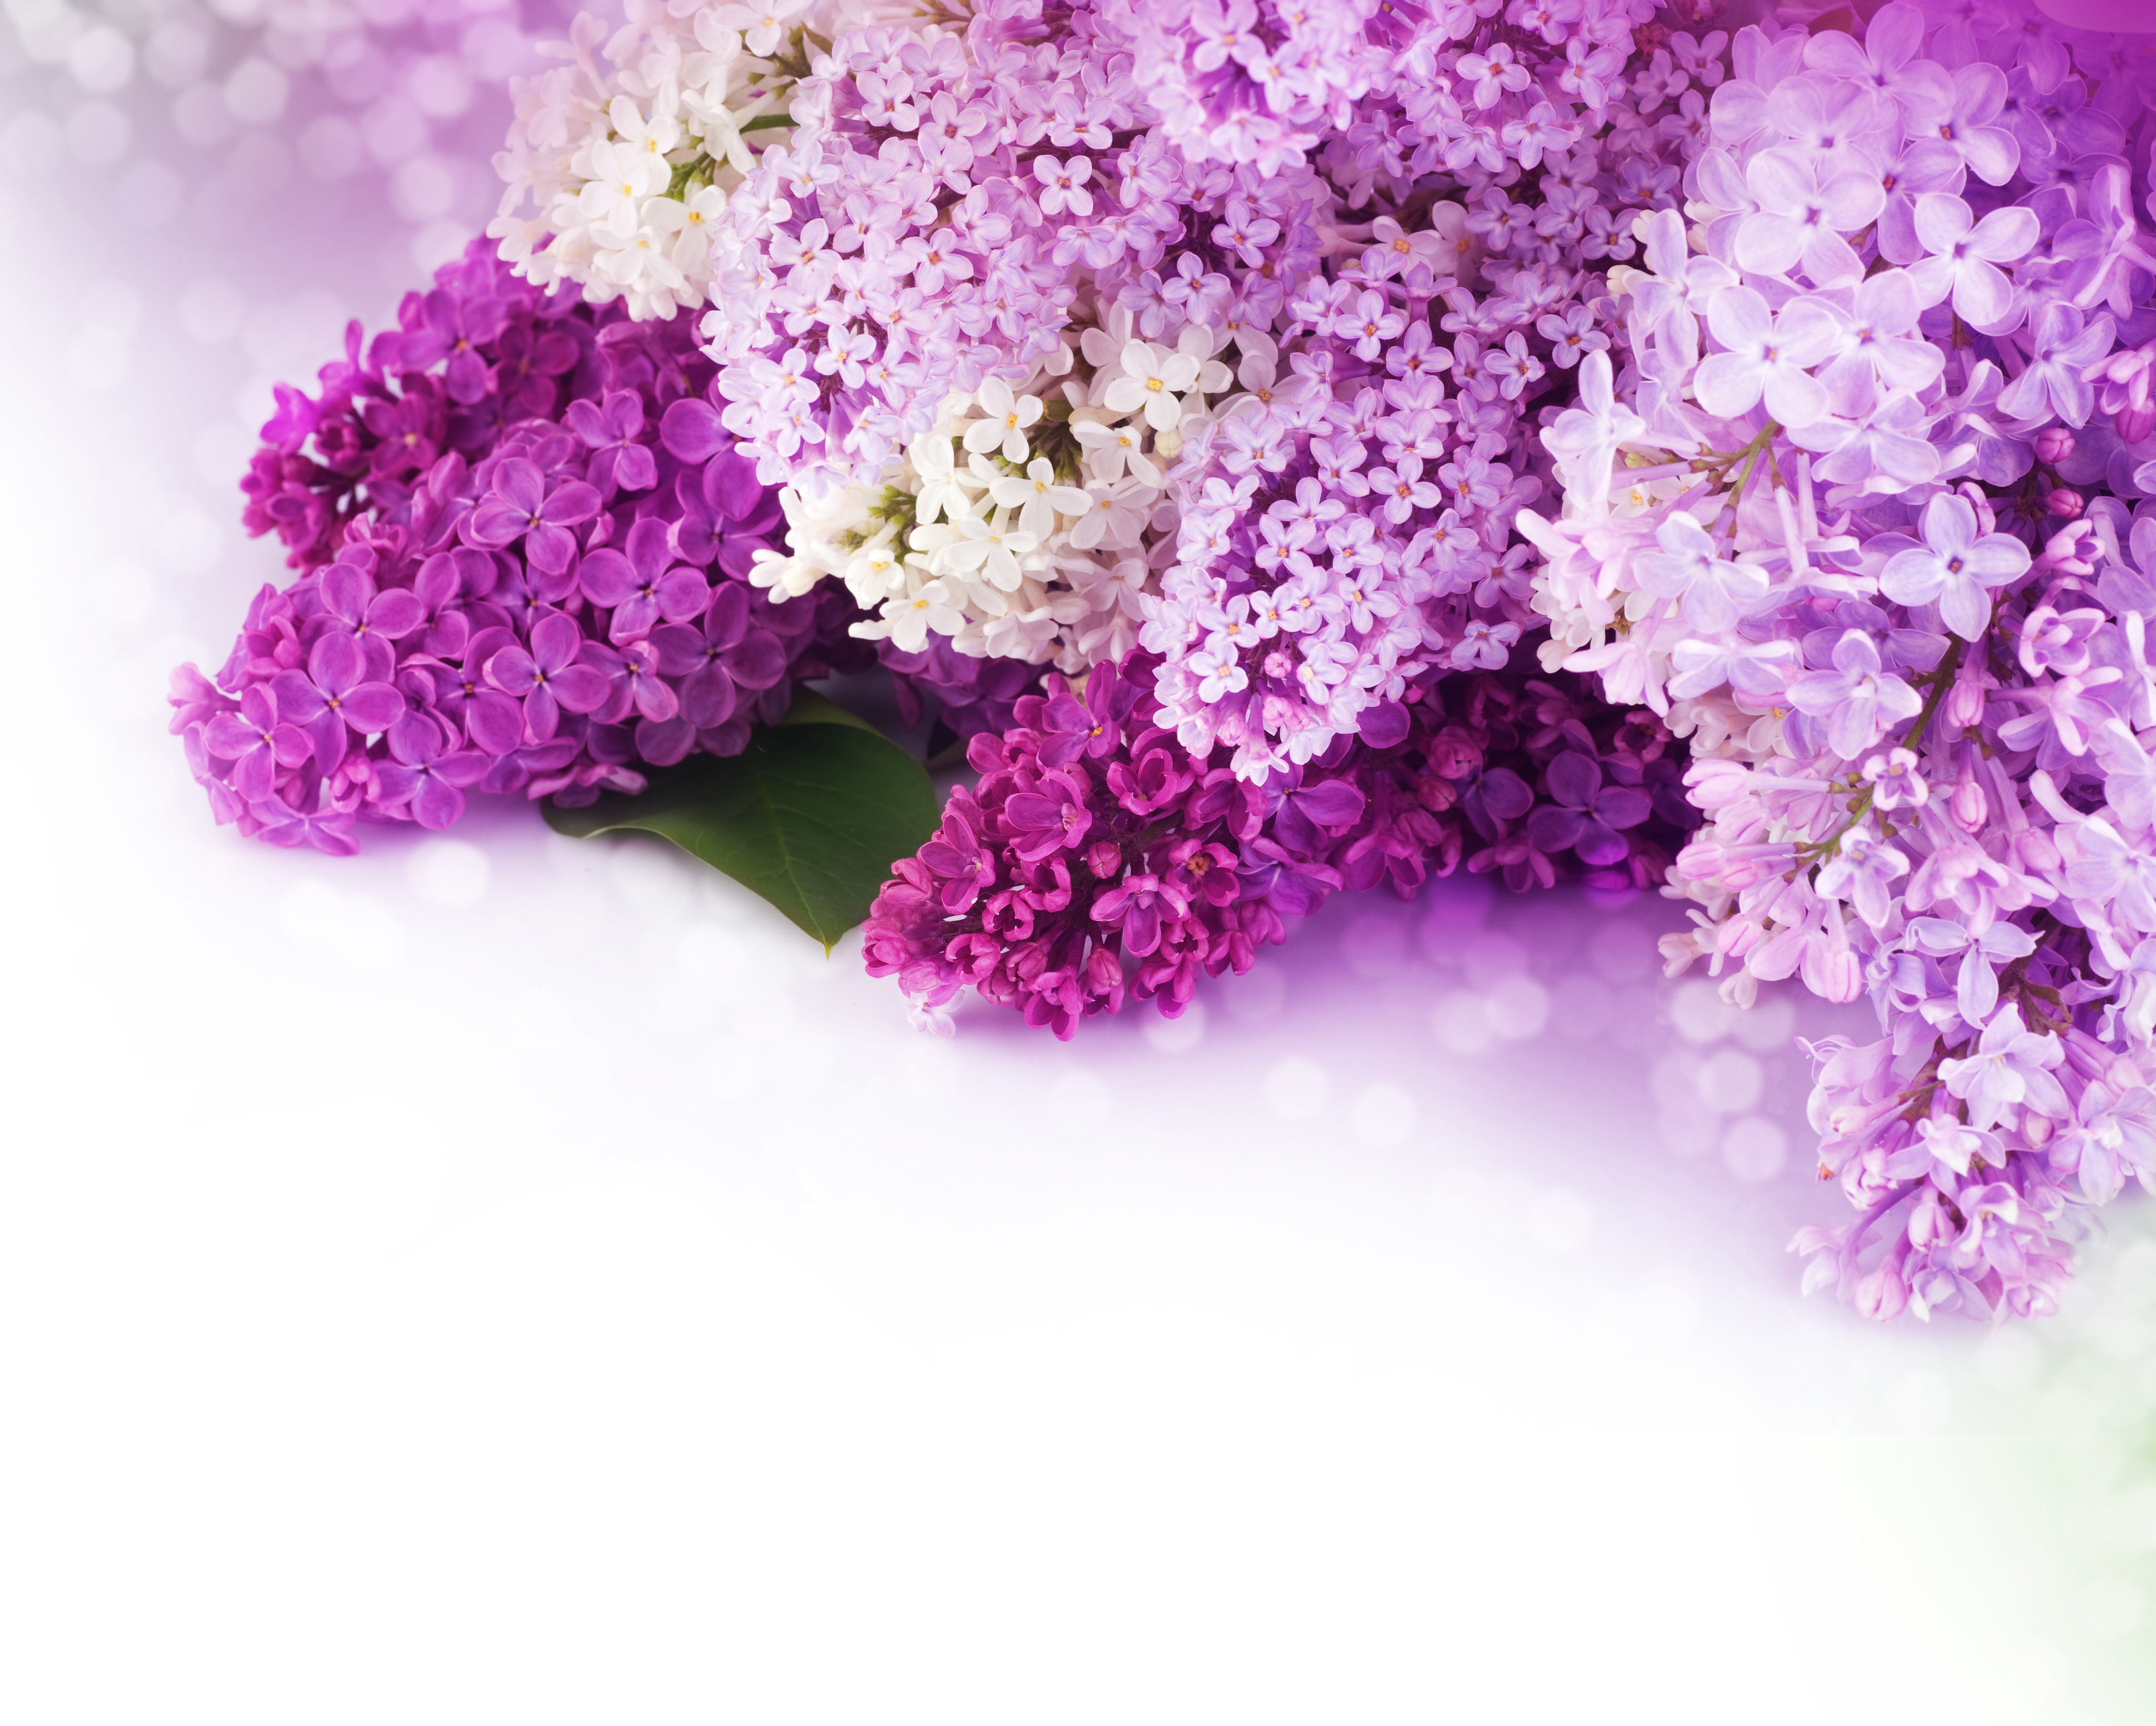 Pink Lilac Flower Flowers Spring Shrub Plant Background Image For